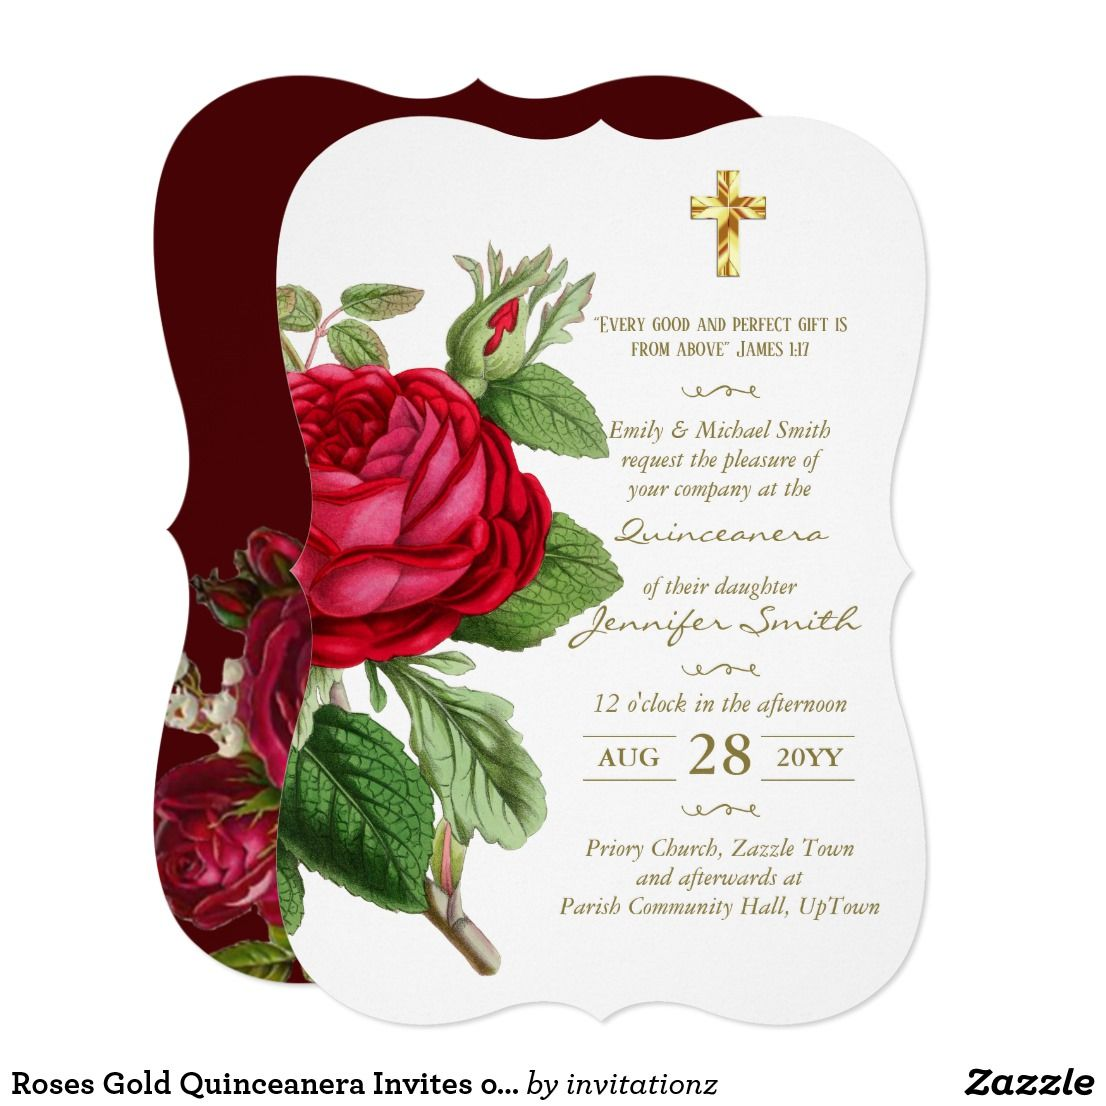 Roses Gold Quinceanera Invites or ANY EVENT | Catholic Store Online ...